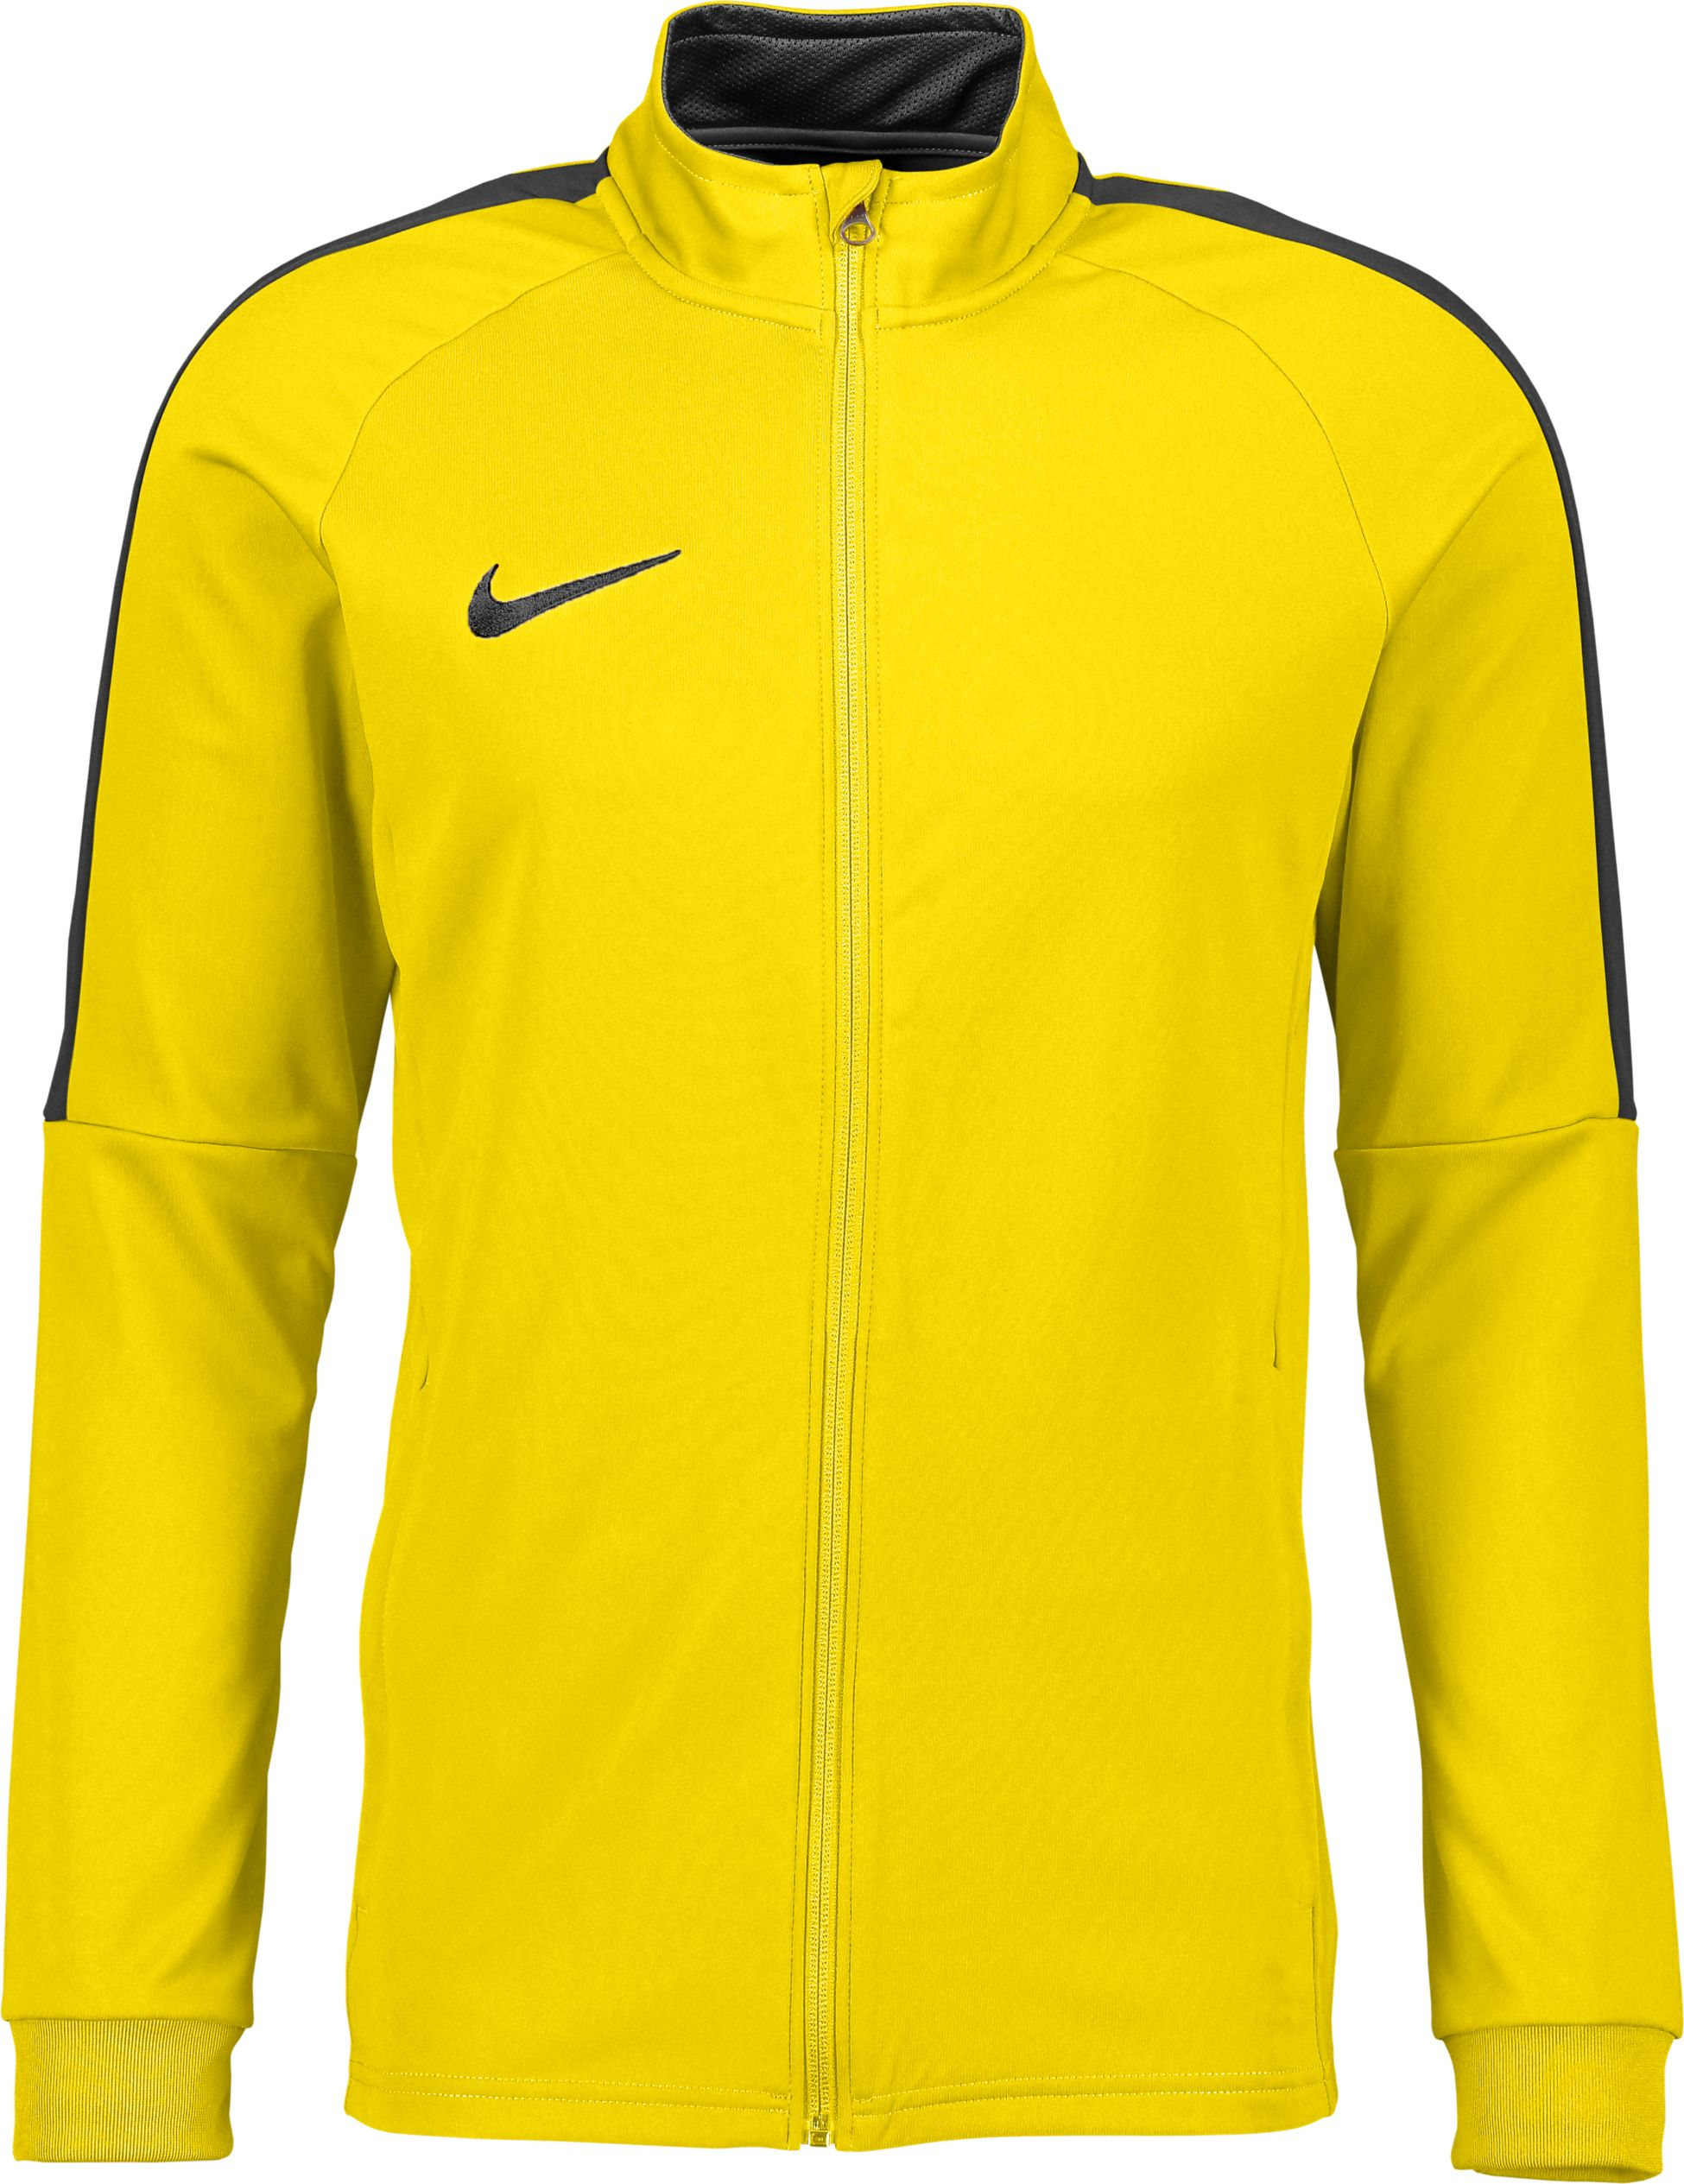 257932107103, ACADEMY 18 T JKT Y, NIKE, Detail